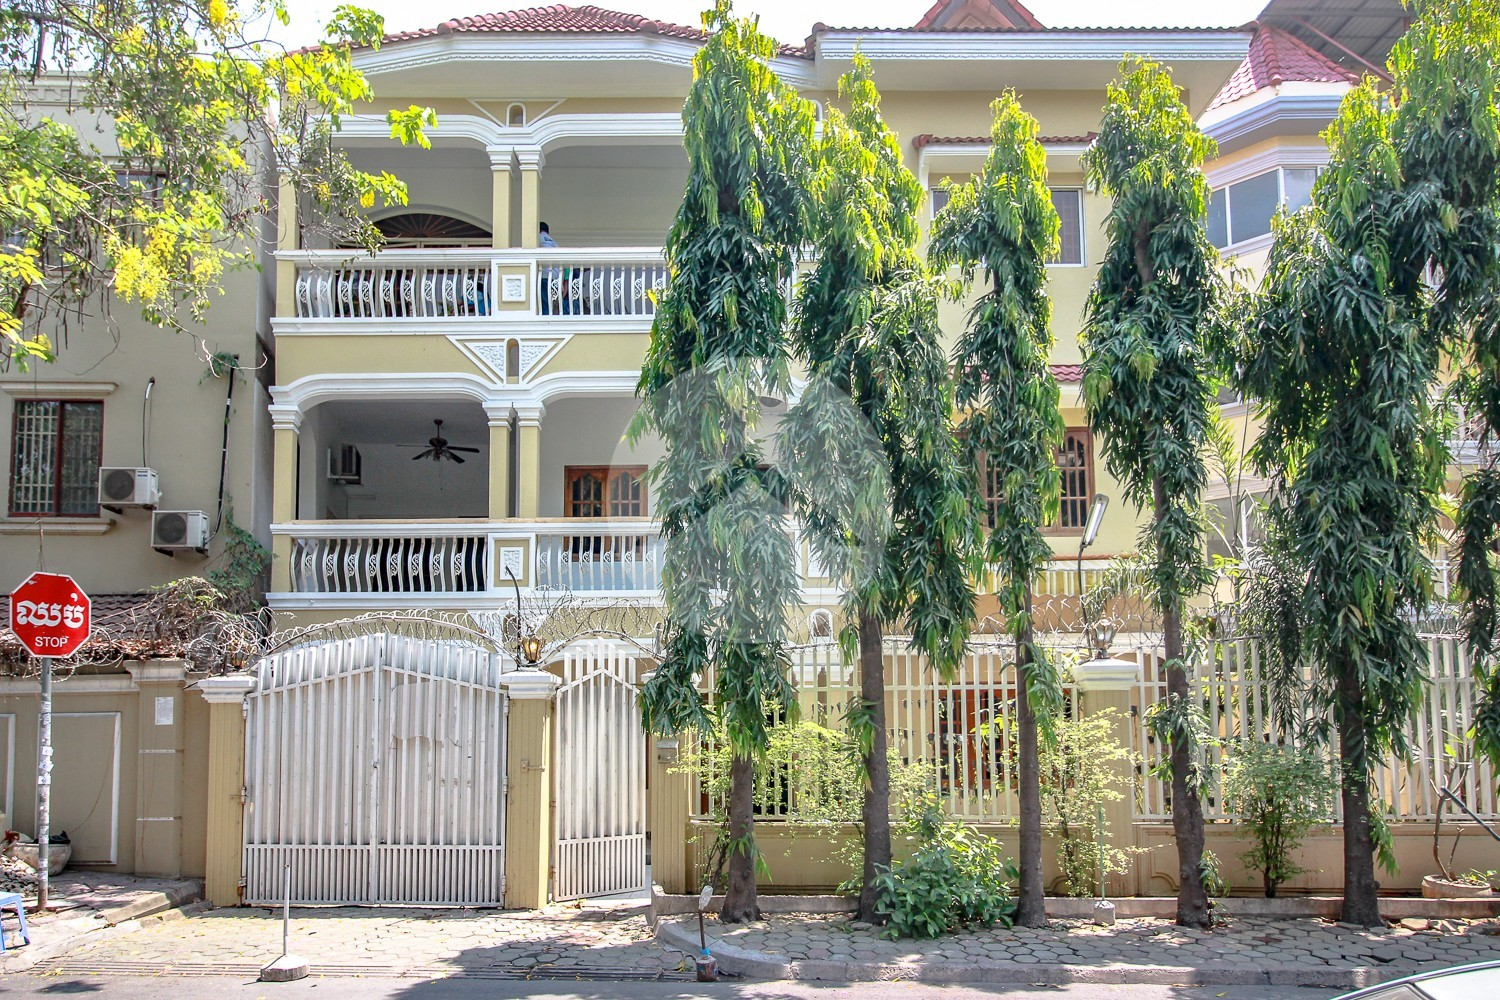 5 Bedroom Commercial Villa For Rent - Tonle Bassac, Phnom Penh